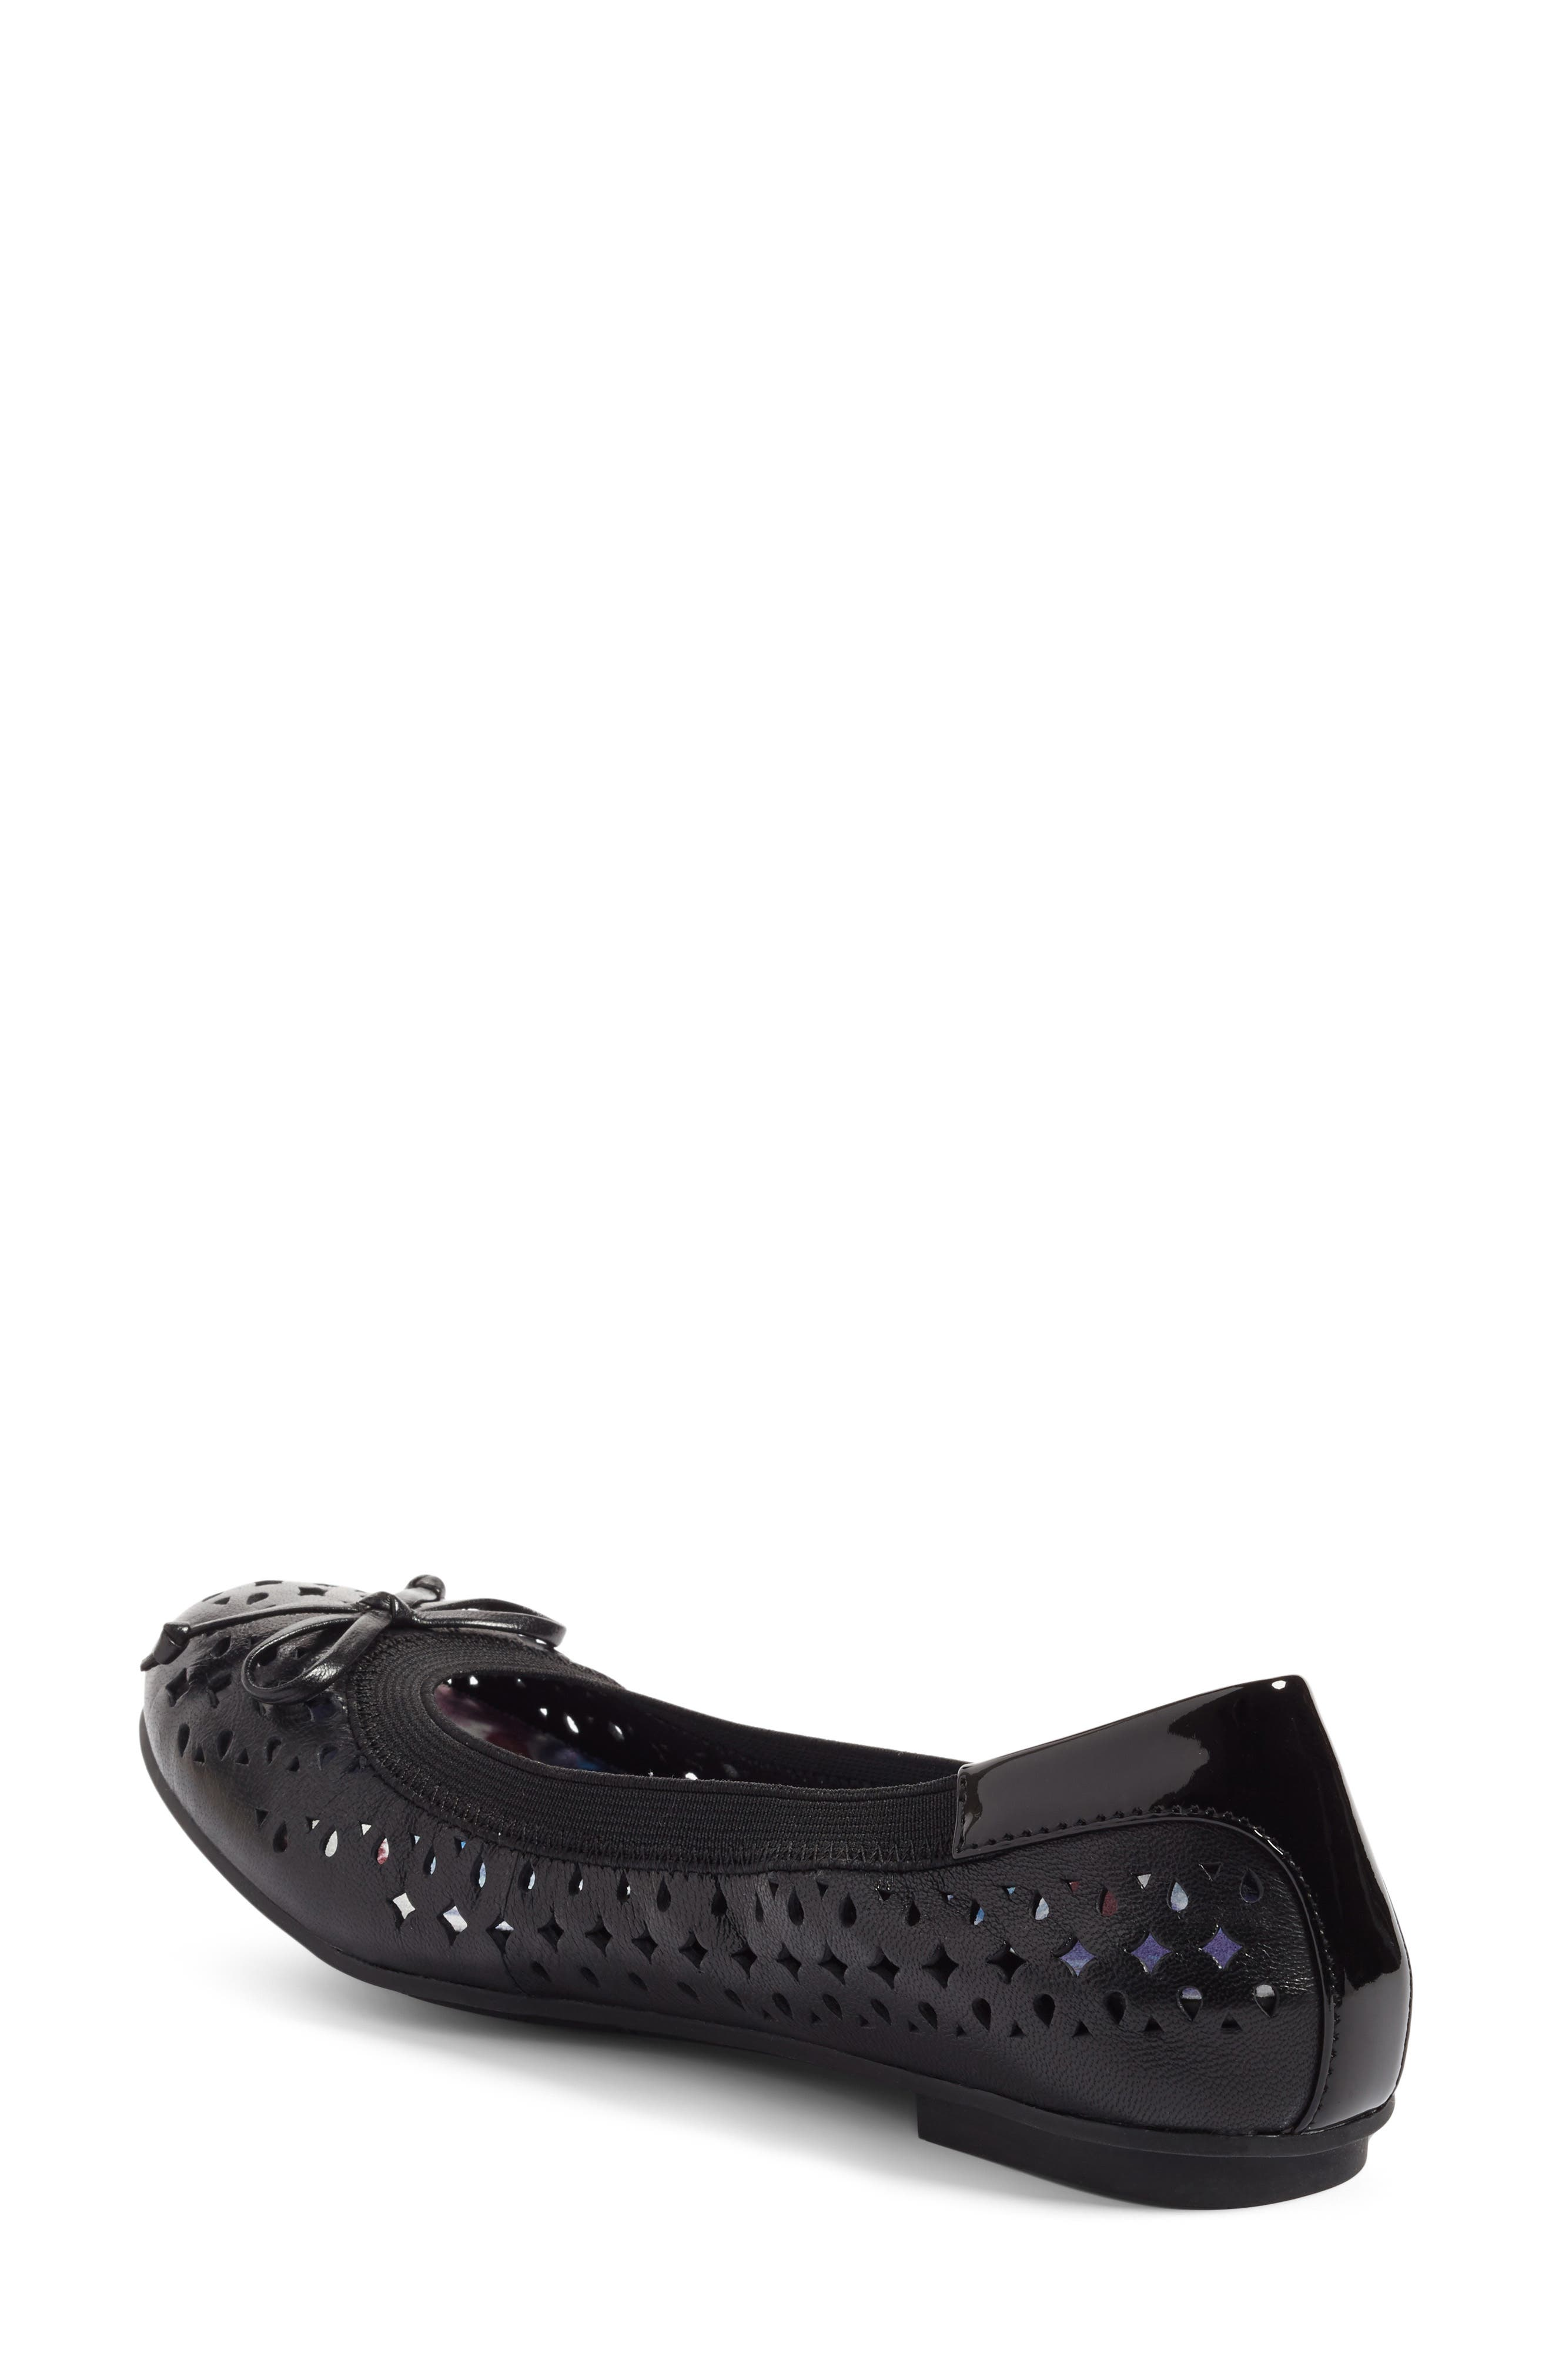 'Surin' Perforated Ballet Flat,                             Alternate thumbnail 12, color,